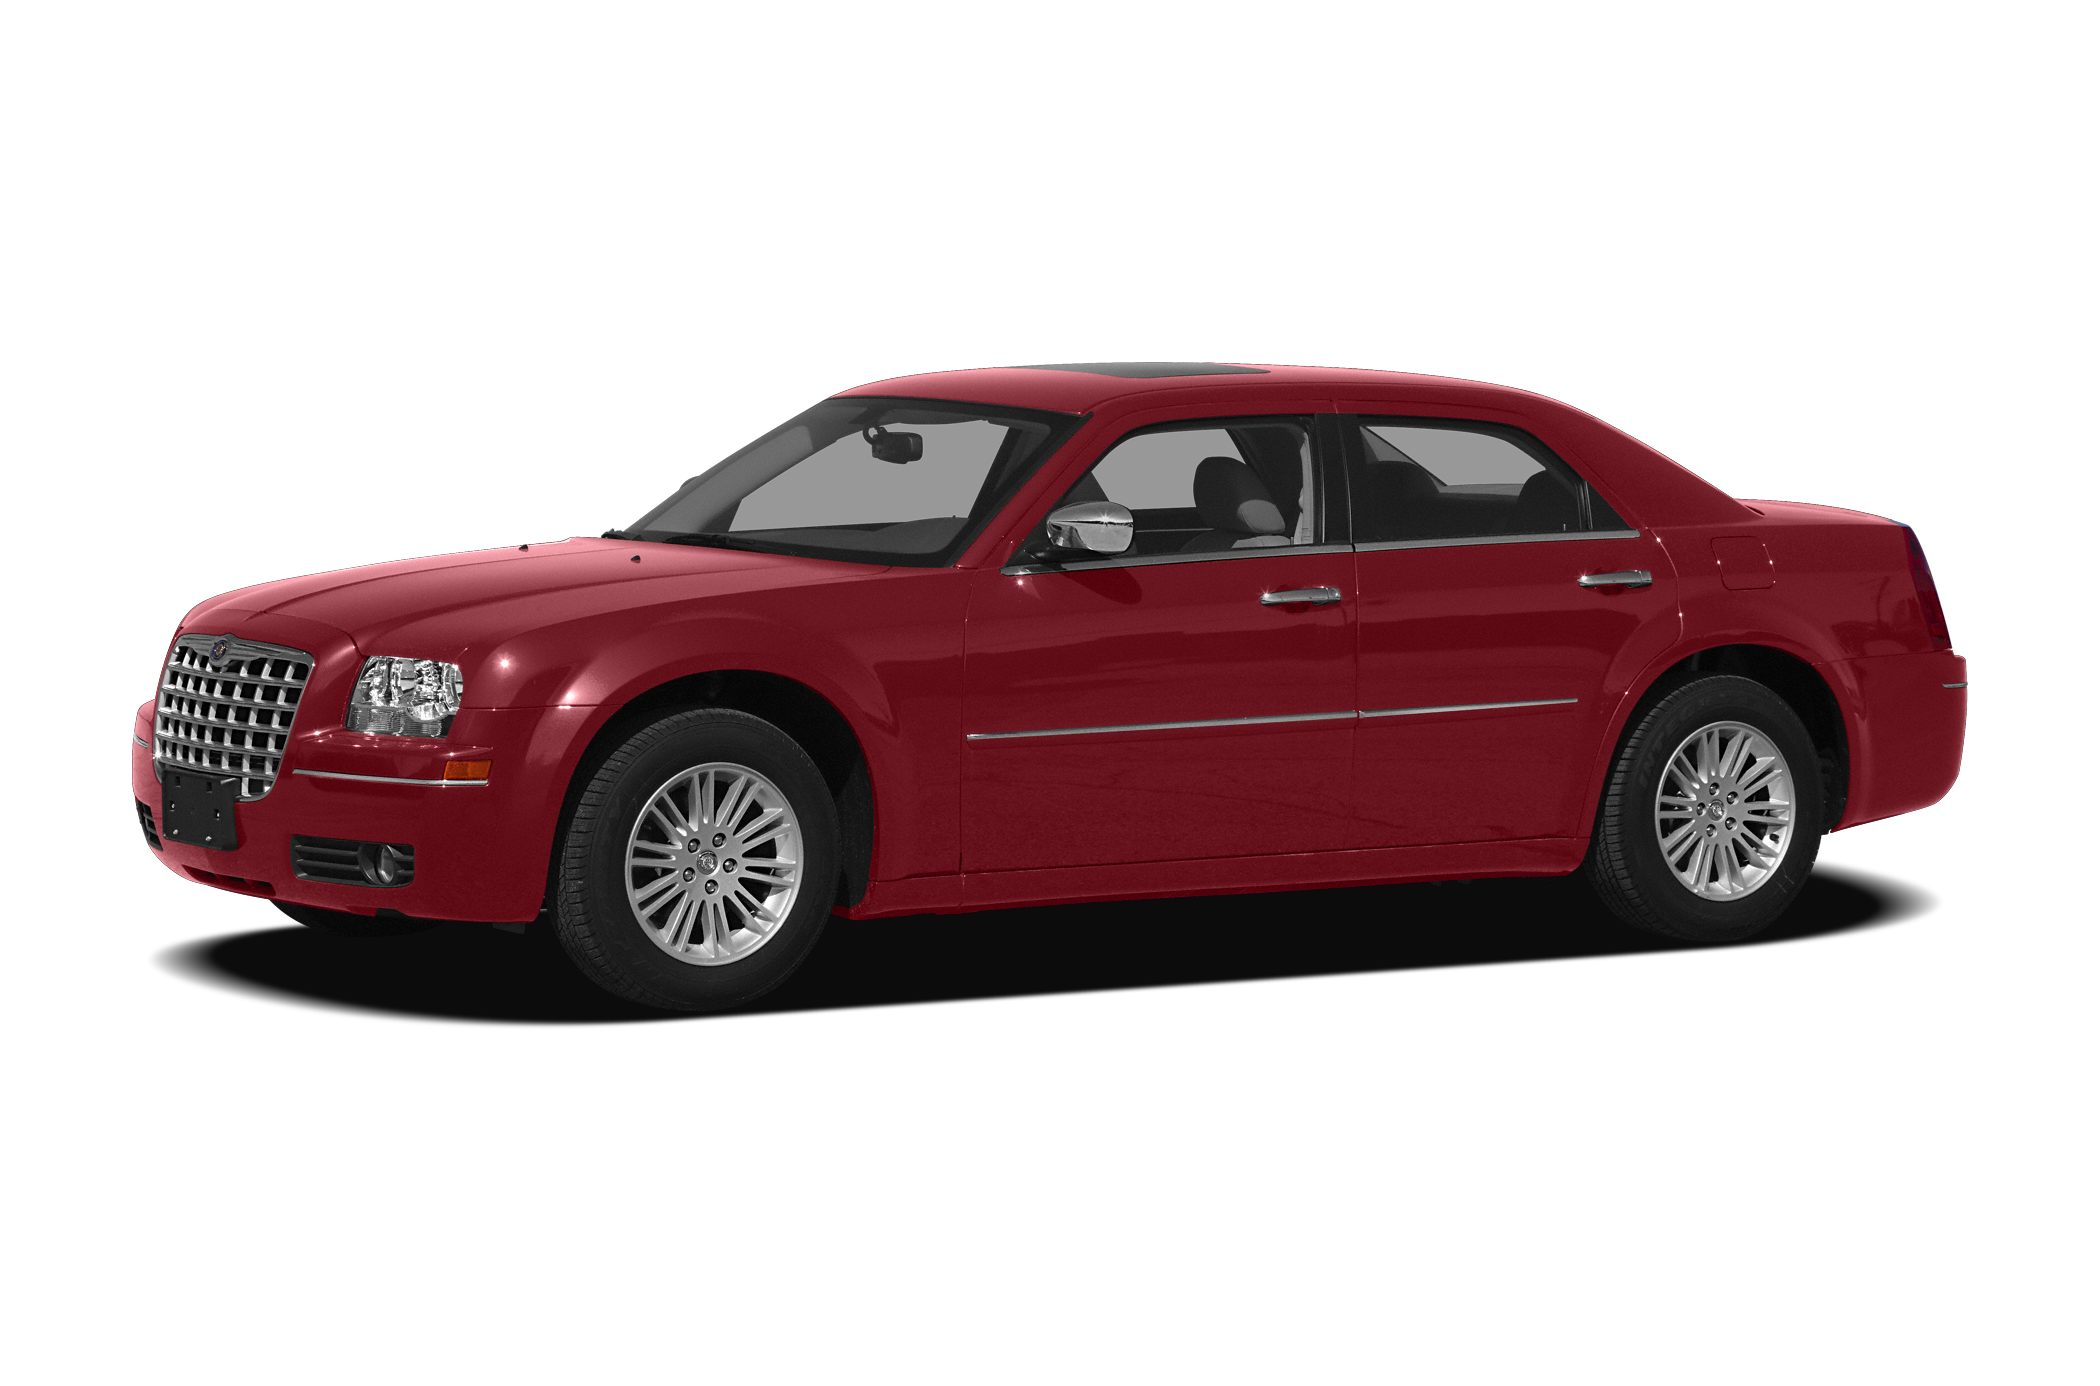 2010 Chrysler 300 Touring Plus OUR PRICESYoure probably wondering why our prices are so much low